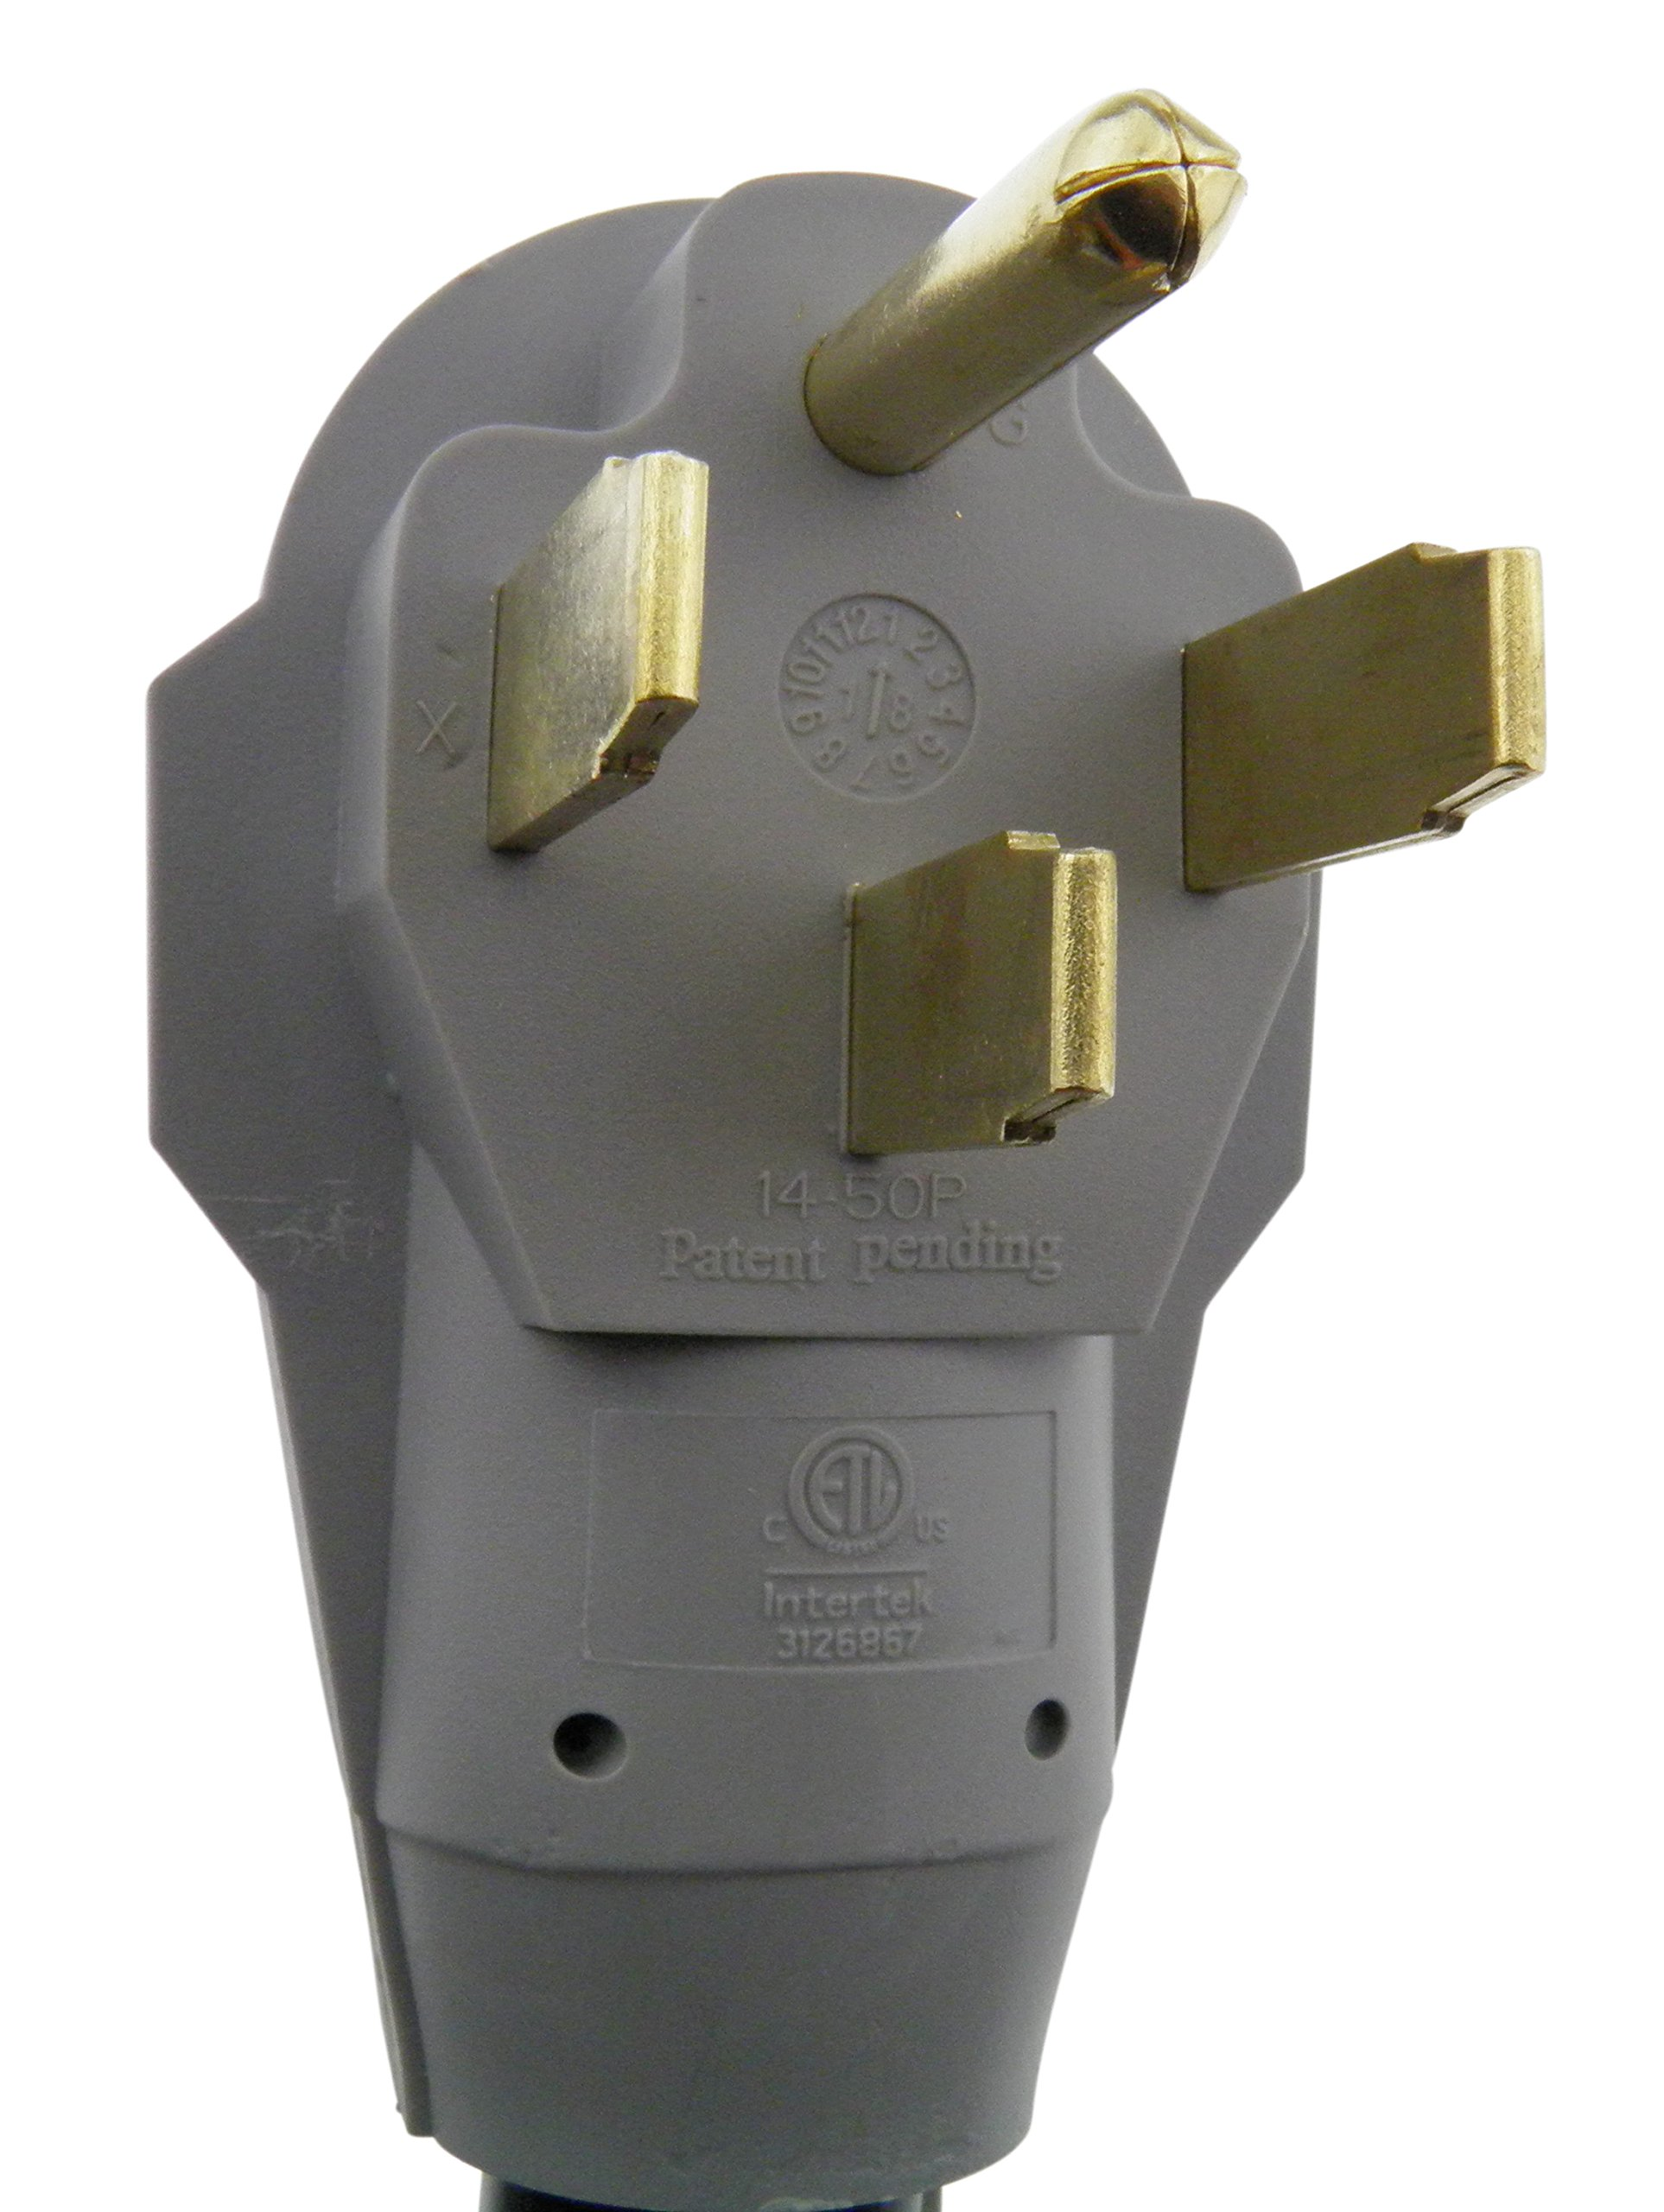 MPI Tools Nema 14-50 Power Cord (3) 6 Gauge Conductor and (1) 8 Gauge, 50 amp 125/250V (30) by MPI Tools (Image #5)